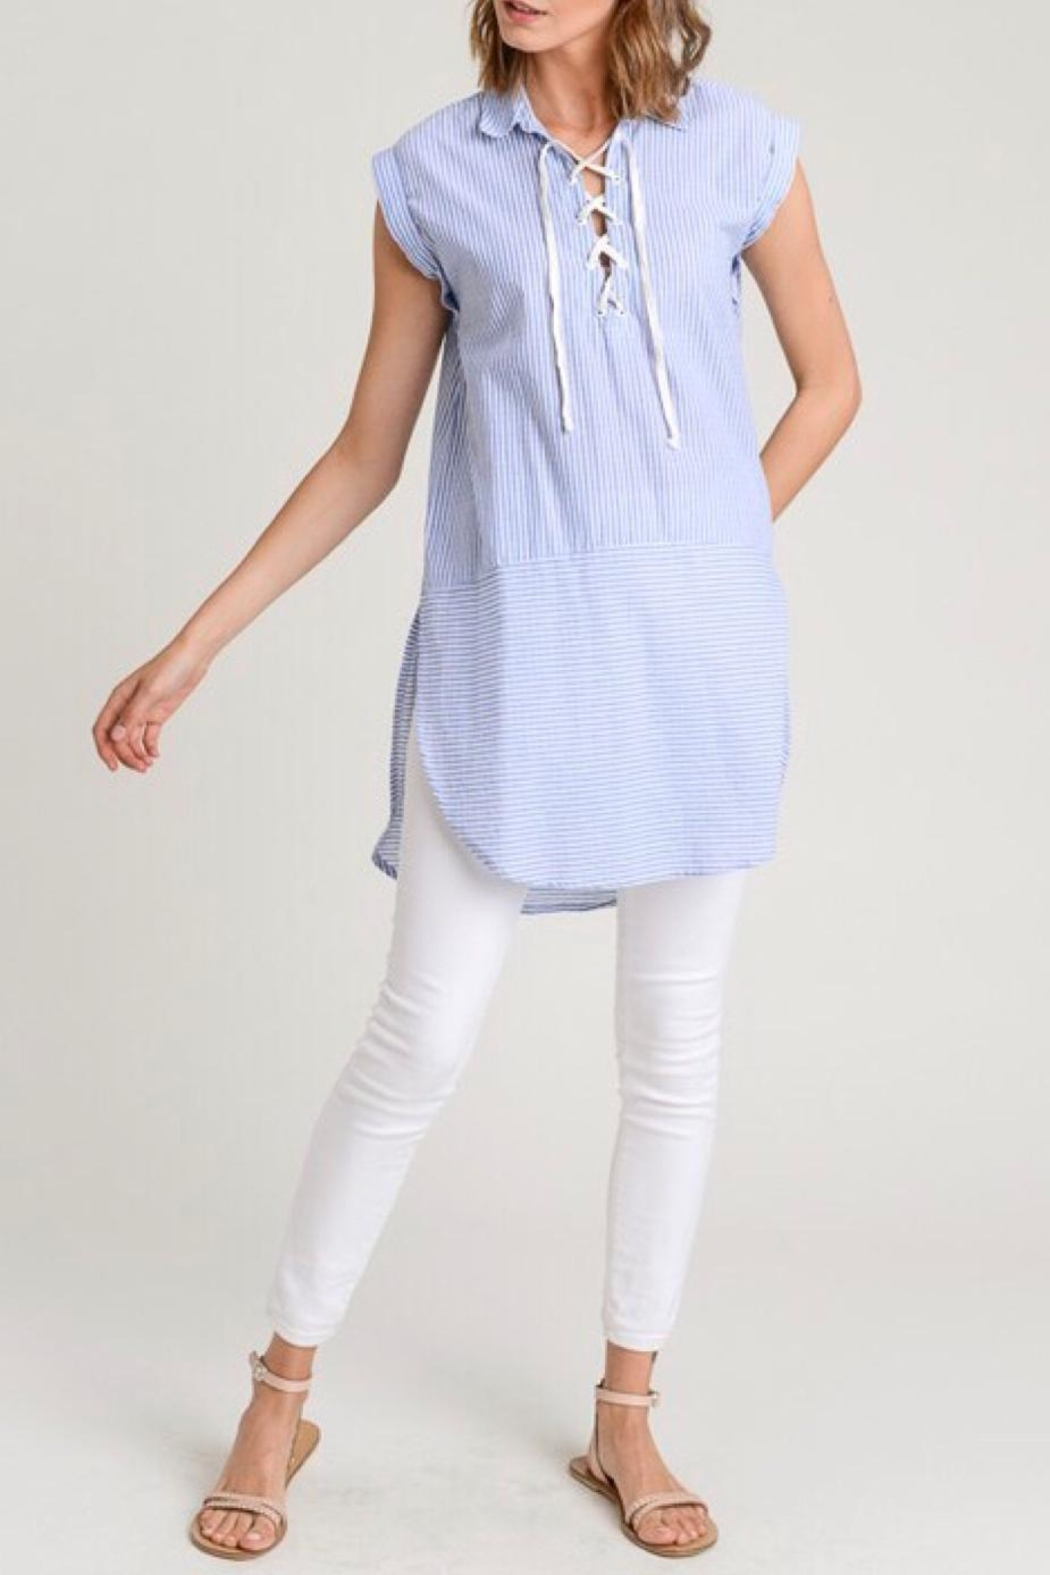 LuLu's Boutique Stripe Tunic Top - Main Image